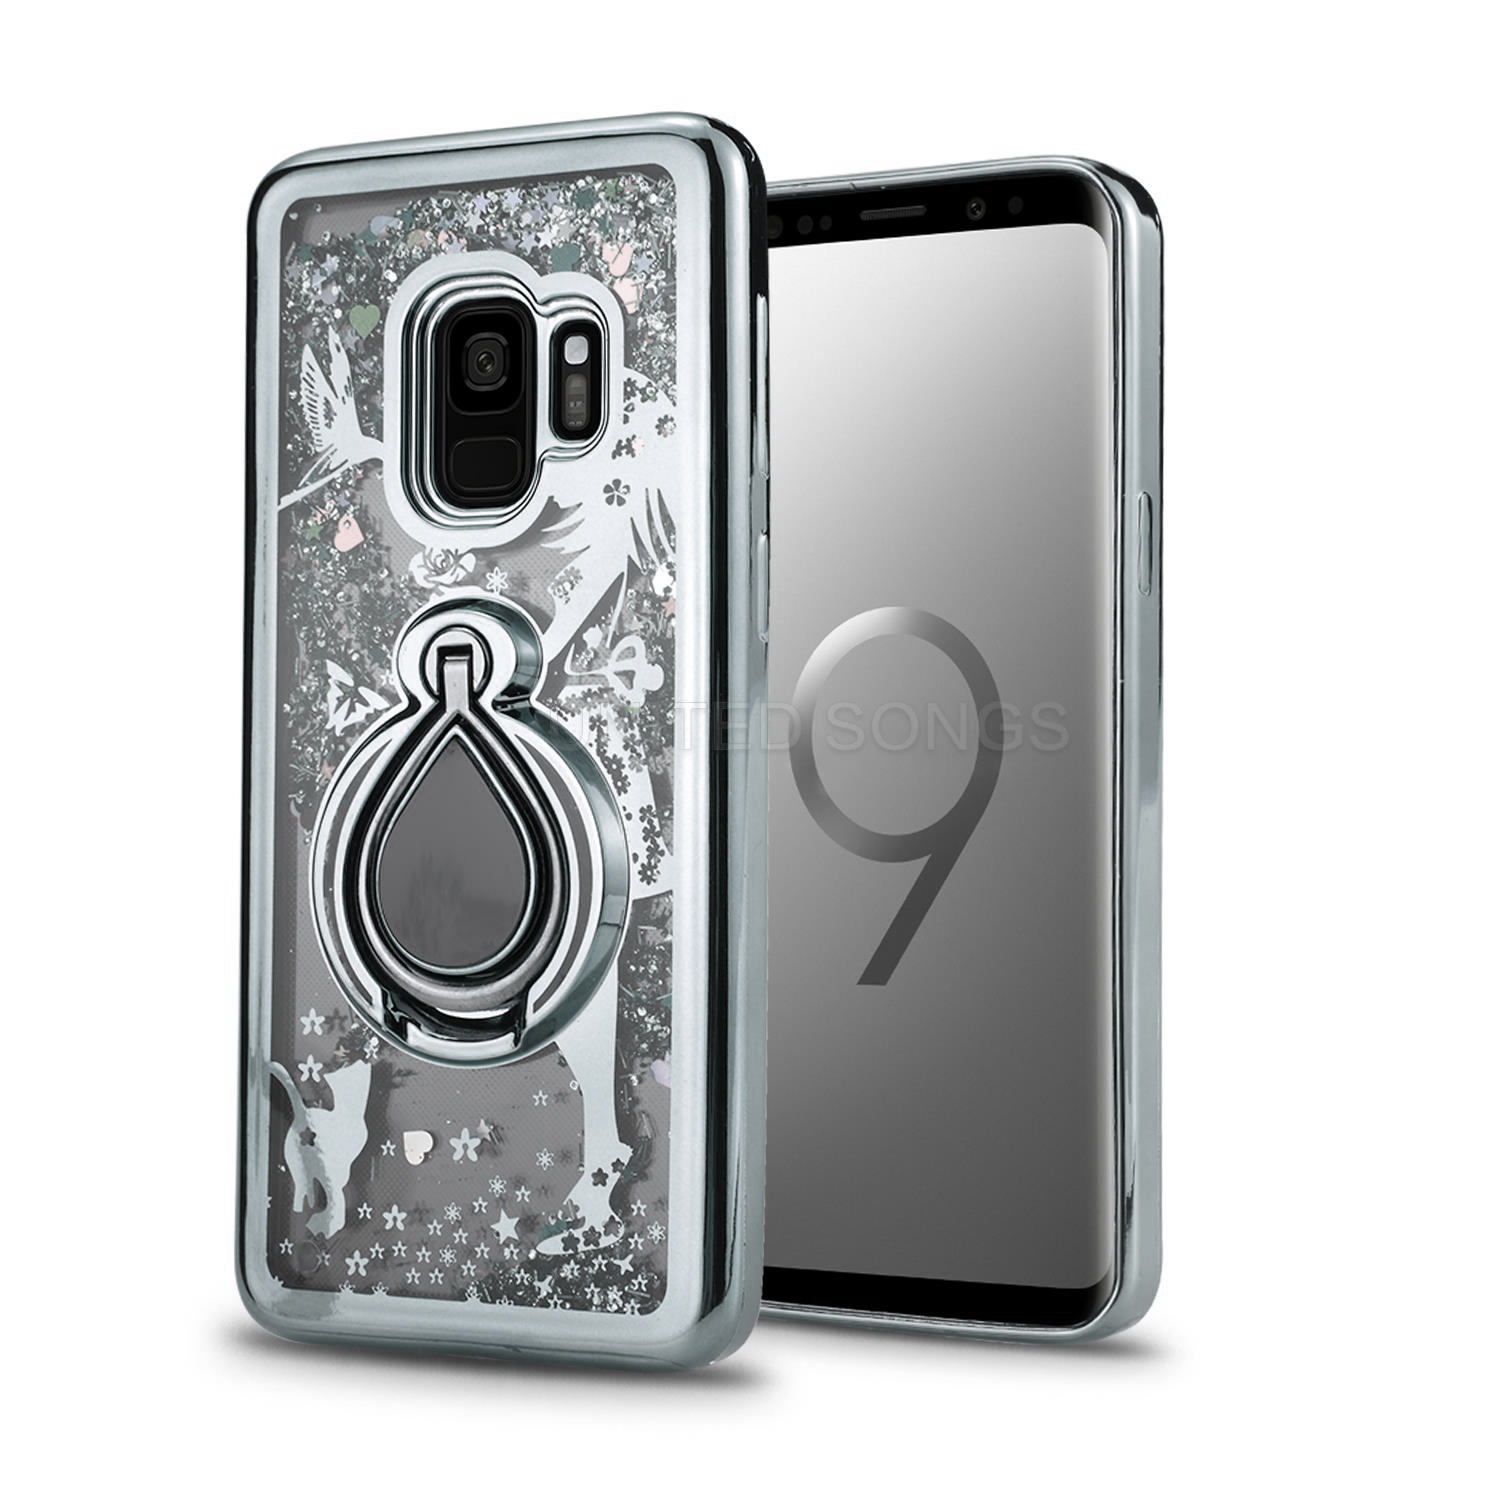 Samsung Galaxy S9 New Liquid Glitter Case With Ring Silver